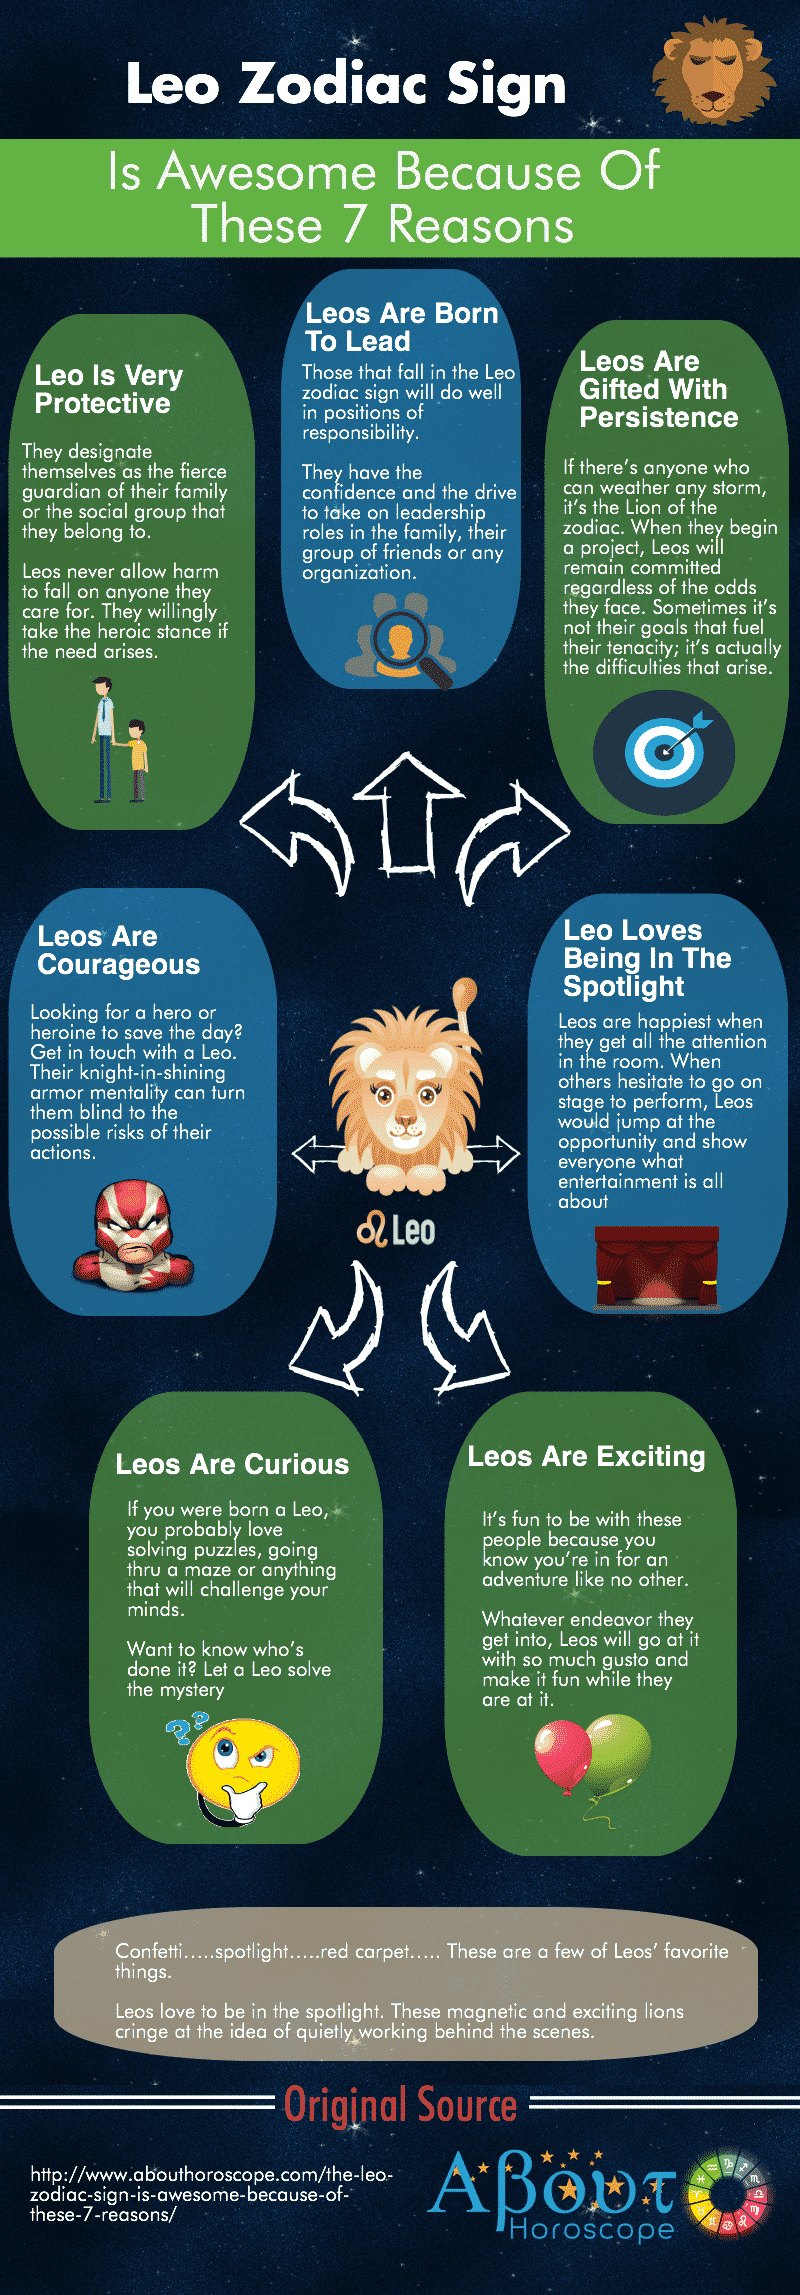 Leo Zodiac Sign Infographic